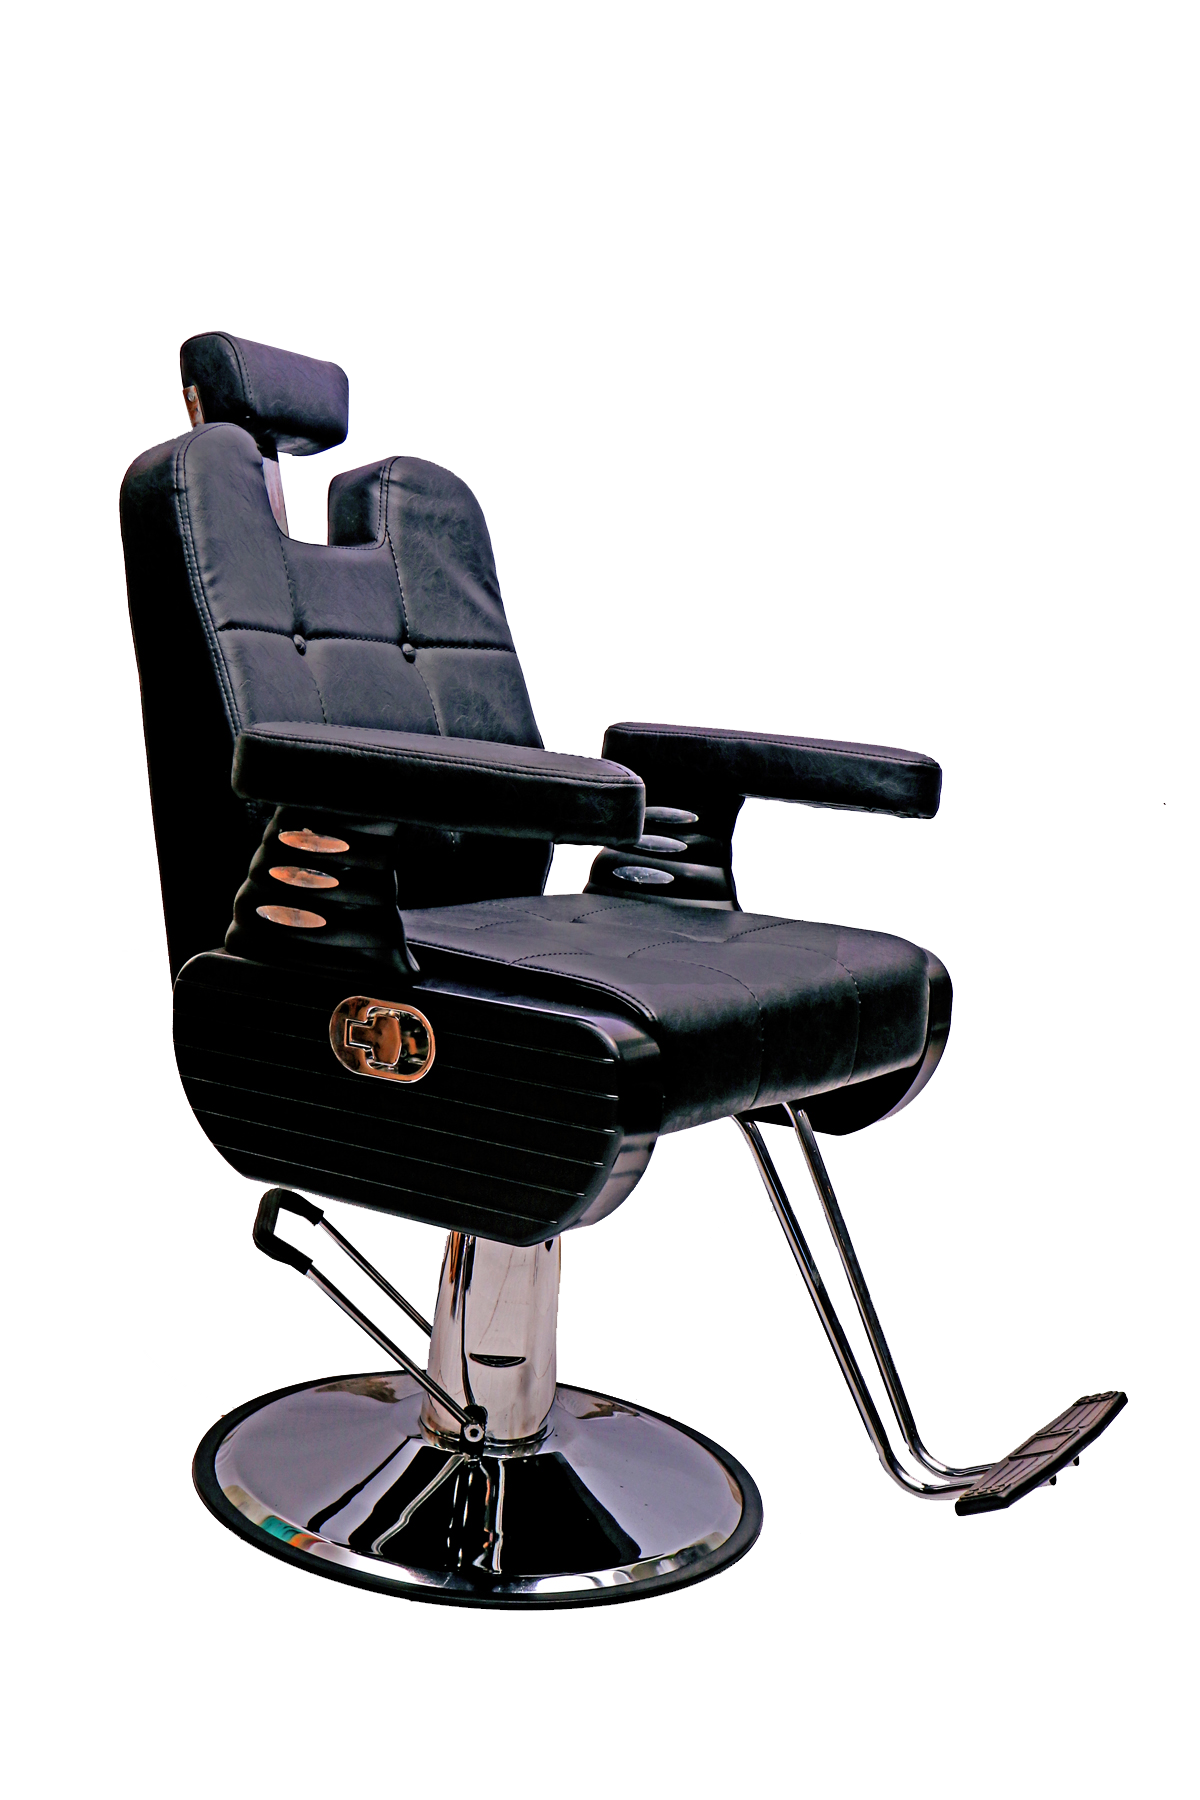 Reclining Salon Barber Chairs 0777535106 0716833884 Patented Products Modern Furniture Barber Chair